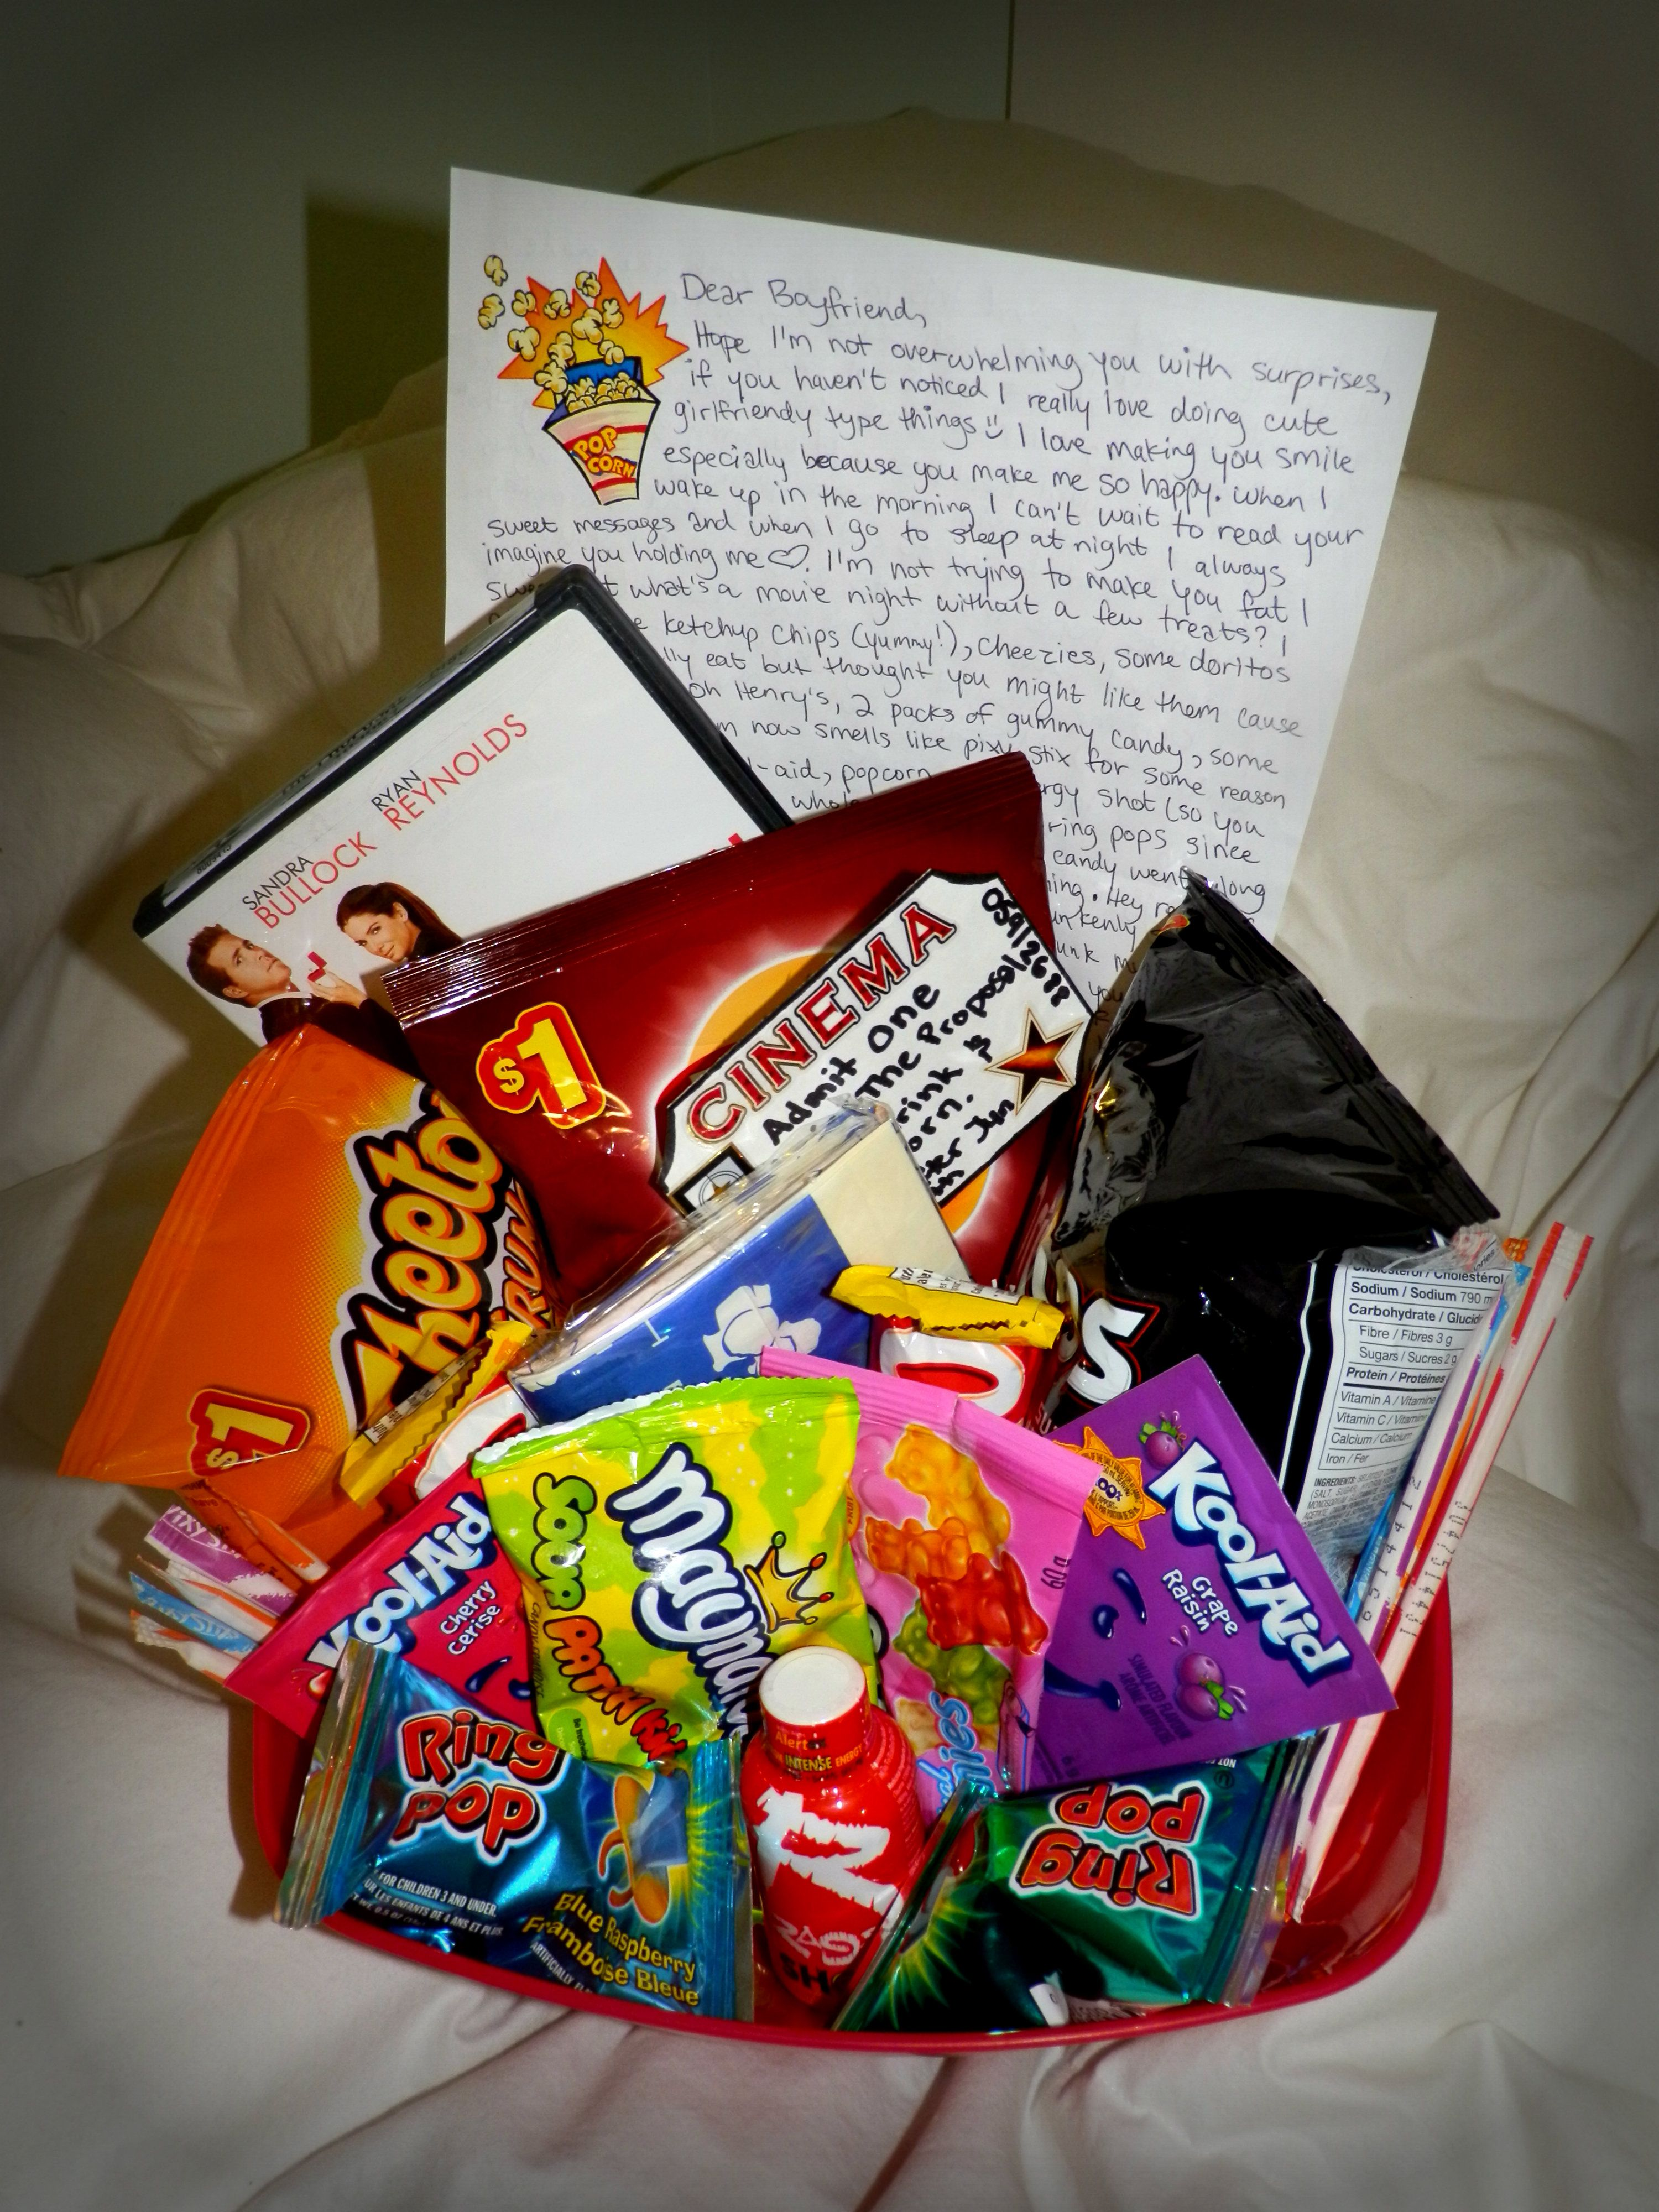 Sweet LDR Surprises… Ldr gifts, Gifts for him, Ldr